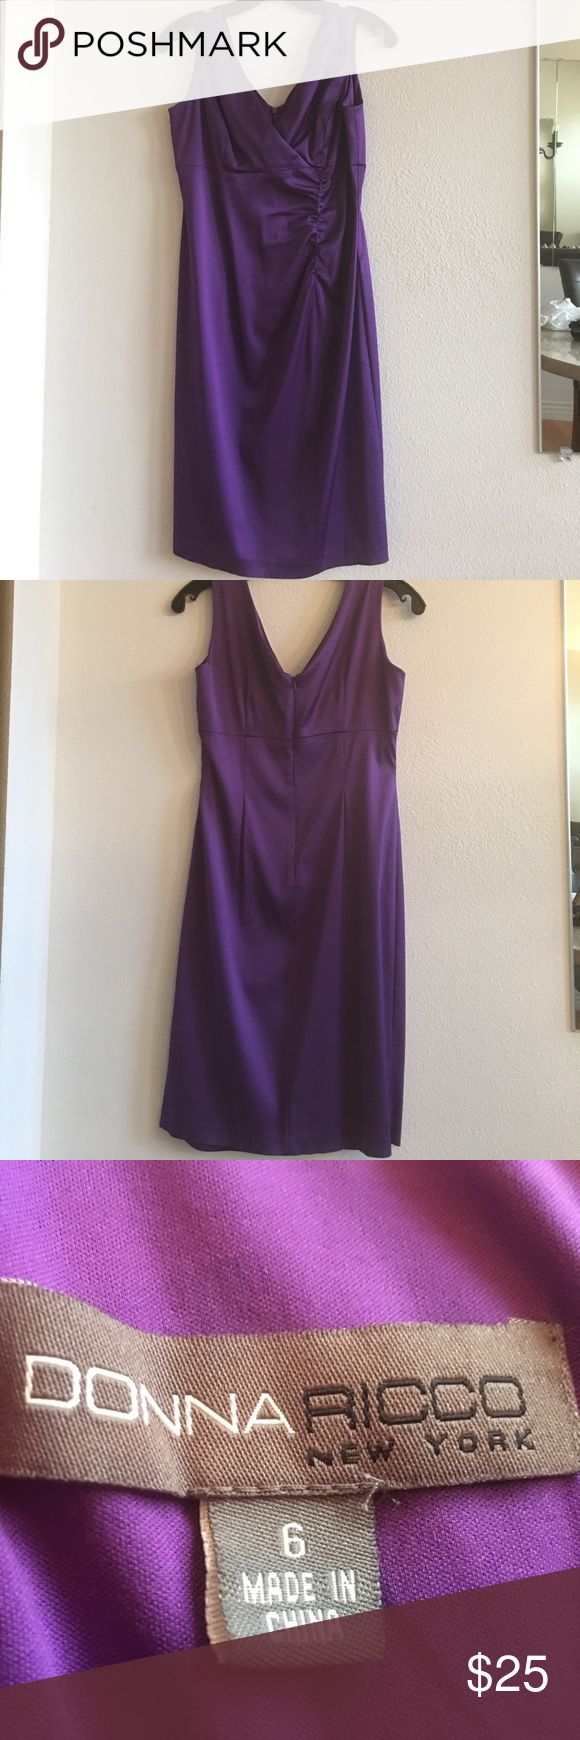 Donna Ricco dress Purple rouched size 6 dress. Slight stretch super sexy. Hits at knee.  No rips or tears Donna Ricco Dresses